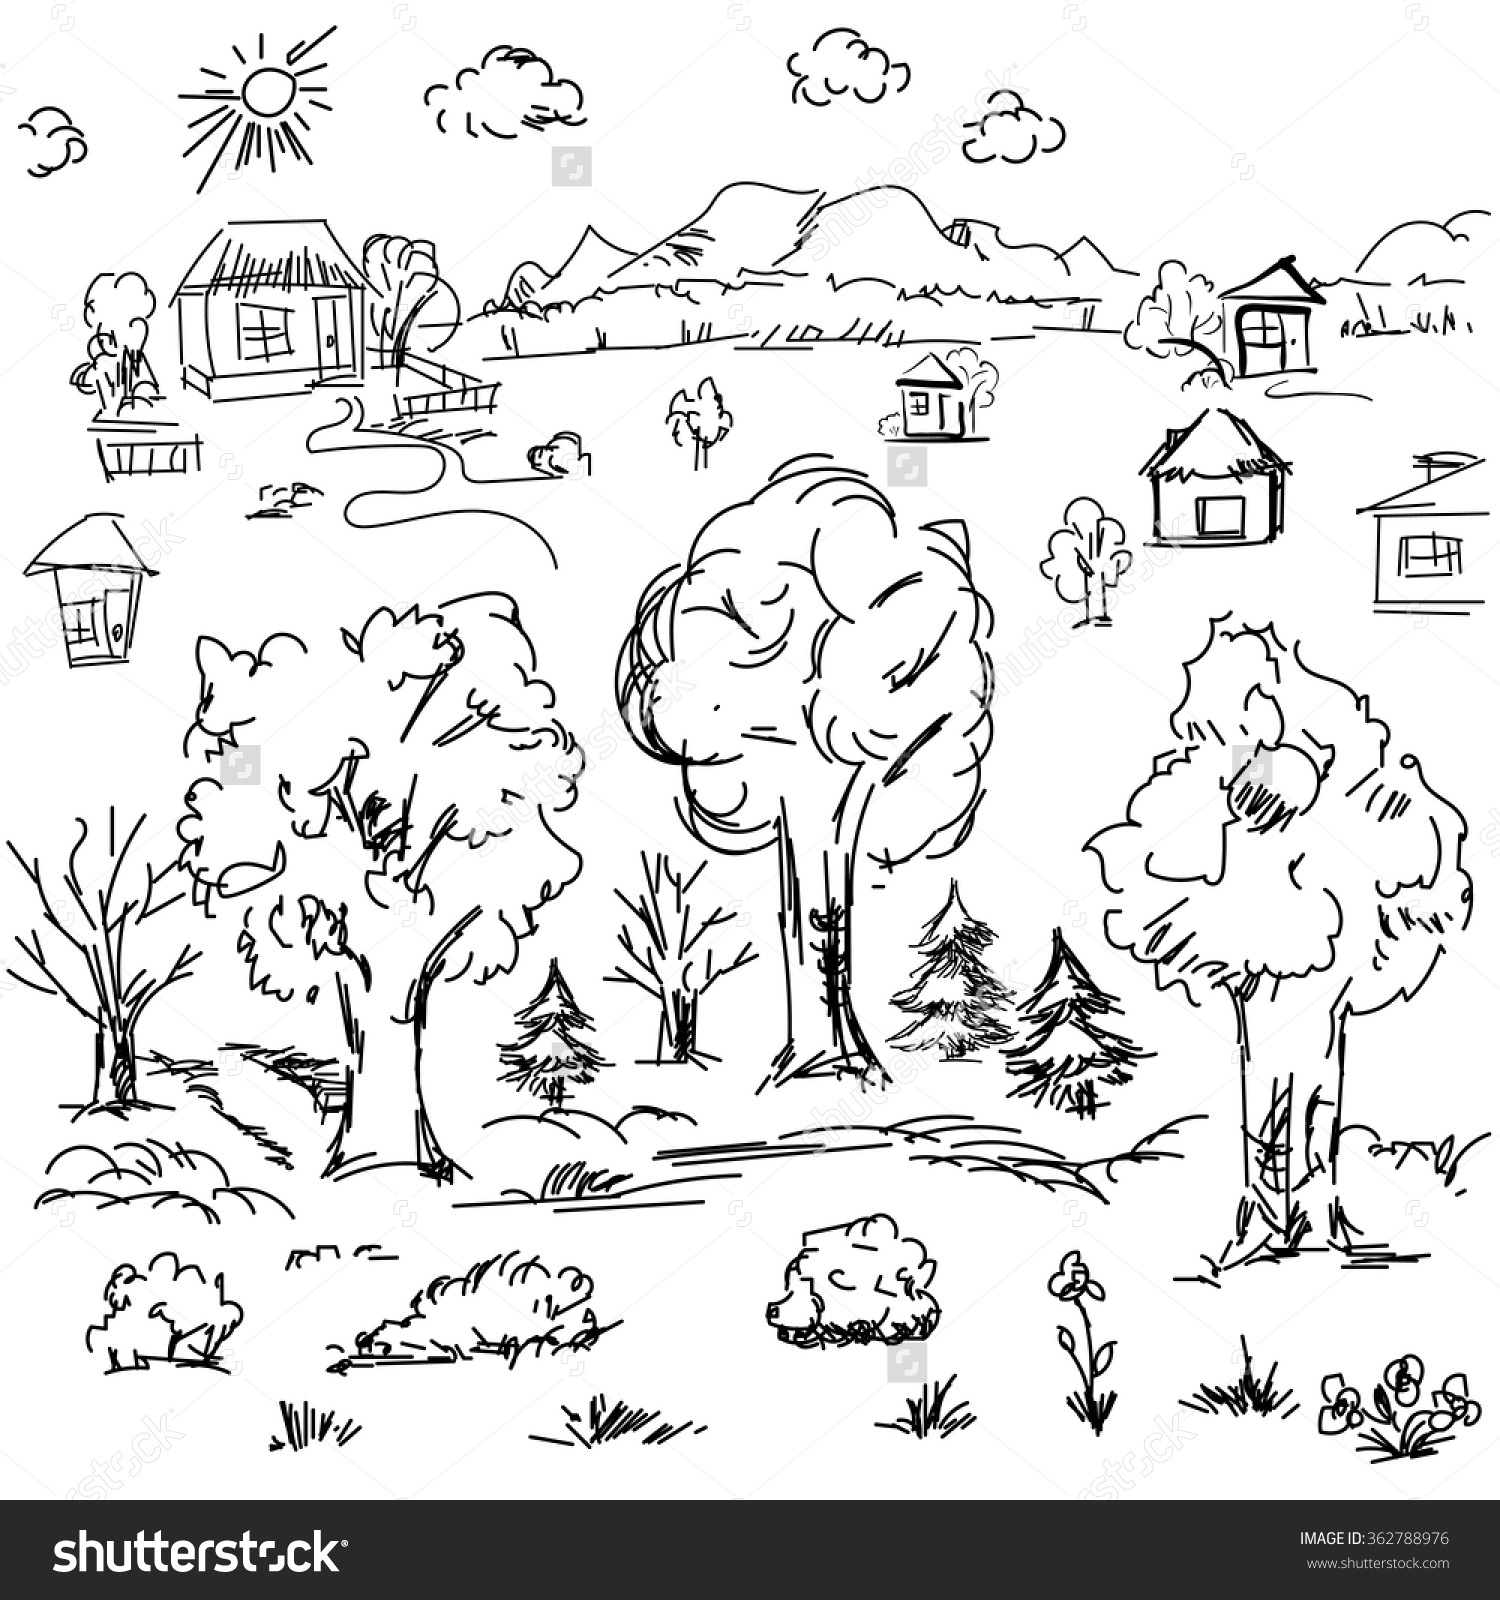 1500x1600 Outline Drawing Of Nature Elements Landscape Outline Doodle Sketch